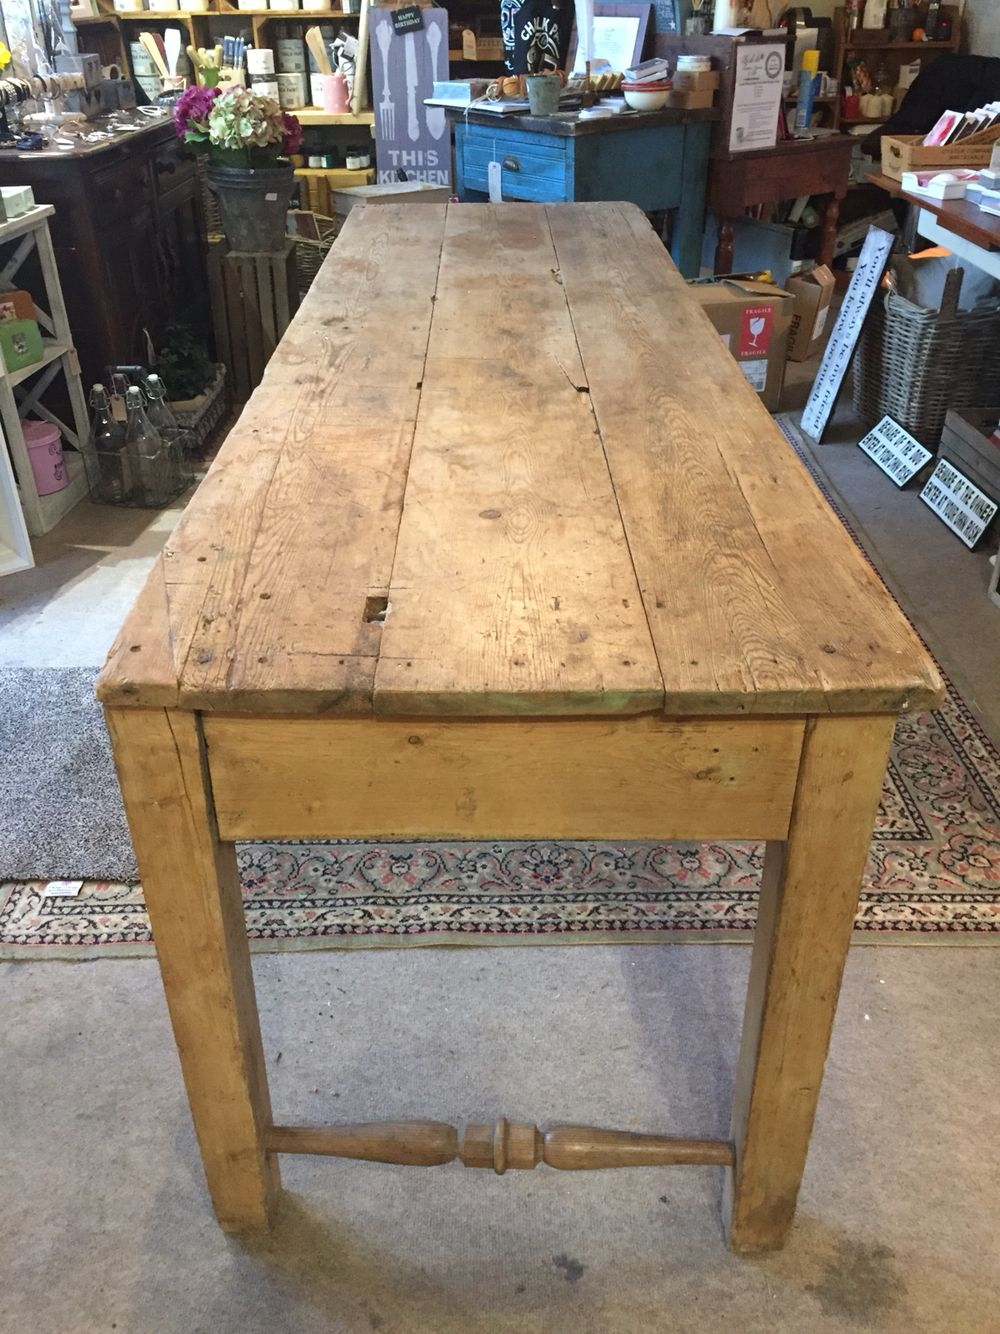 Antique table #upcycling #vintage £350 7ft long #ladida #hampshire - Antique Table #upcycling #vintage £350 7ft Long #ladida #hampshire